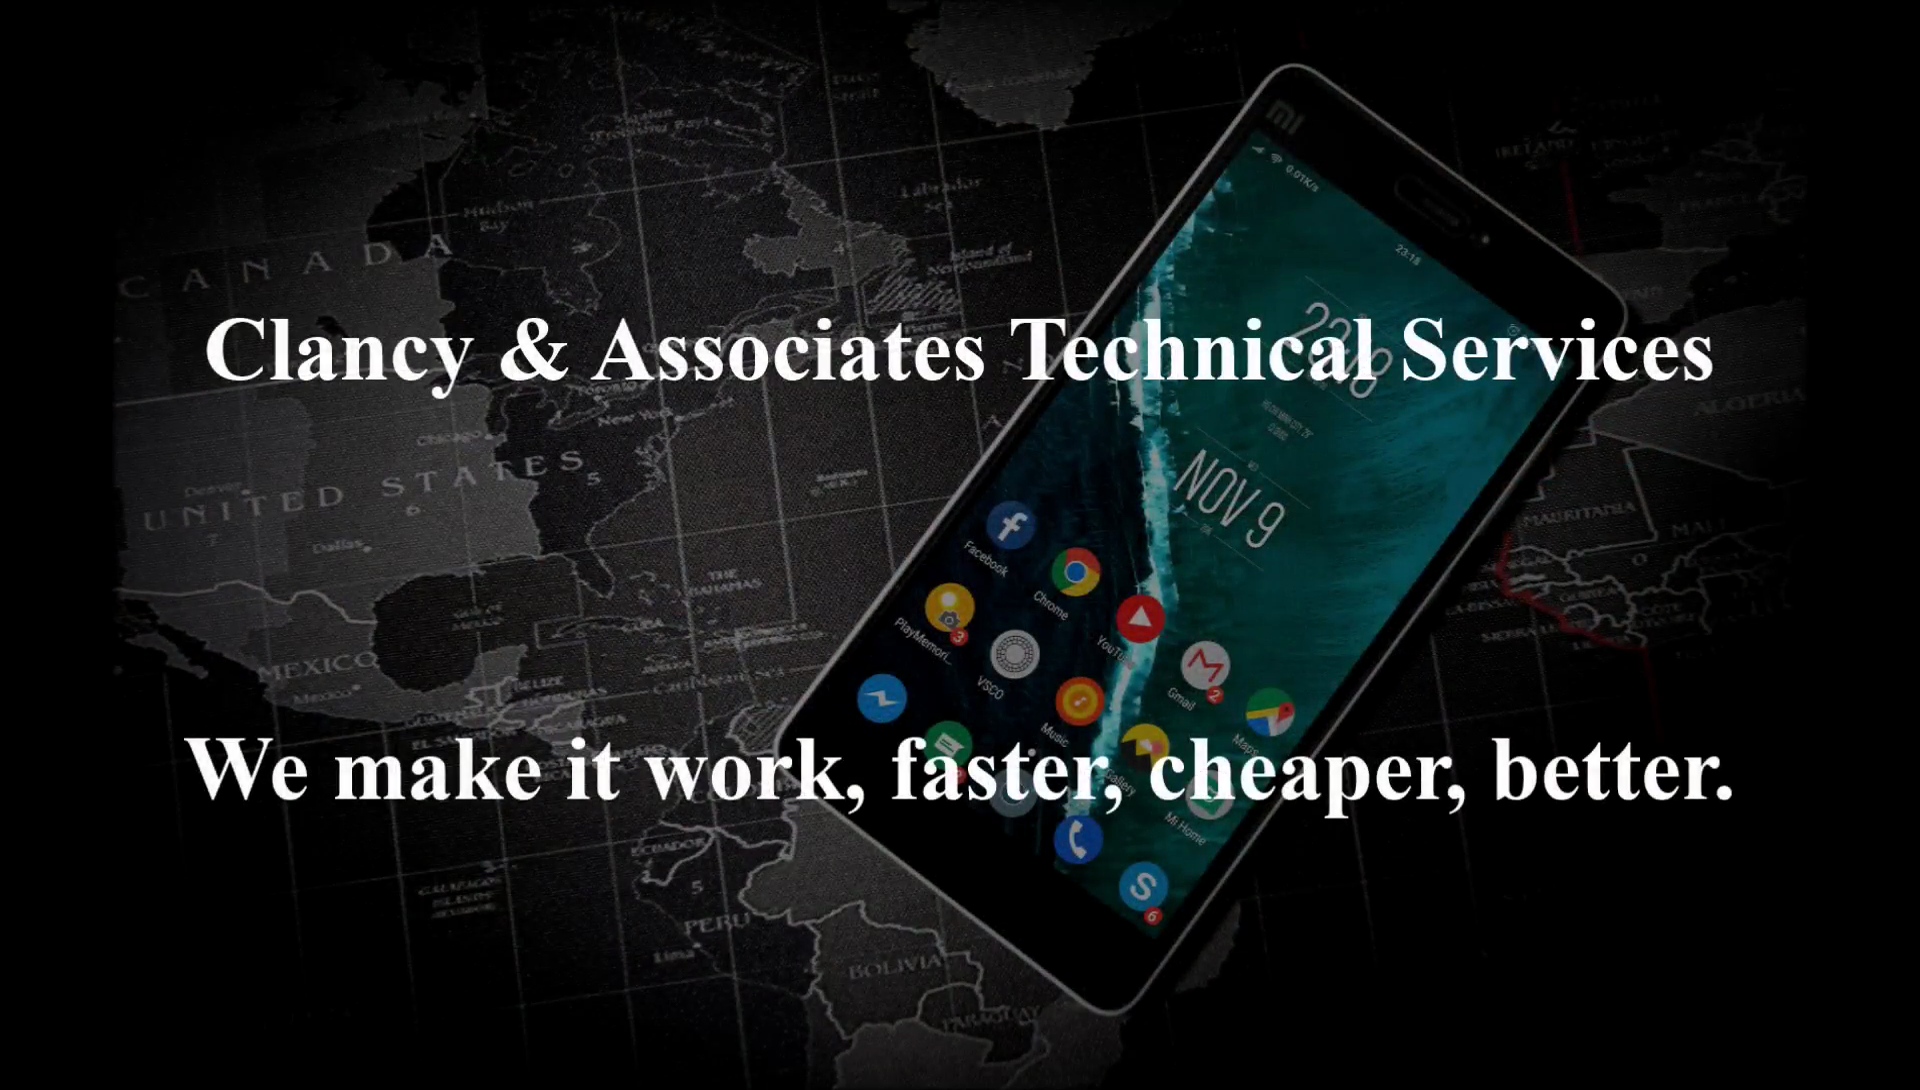 Clancy & Associates Technical Services